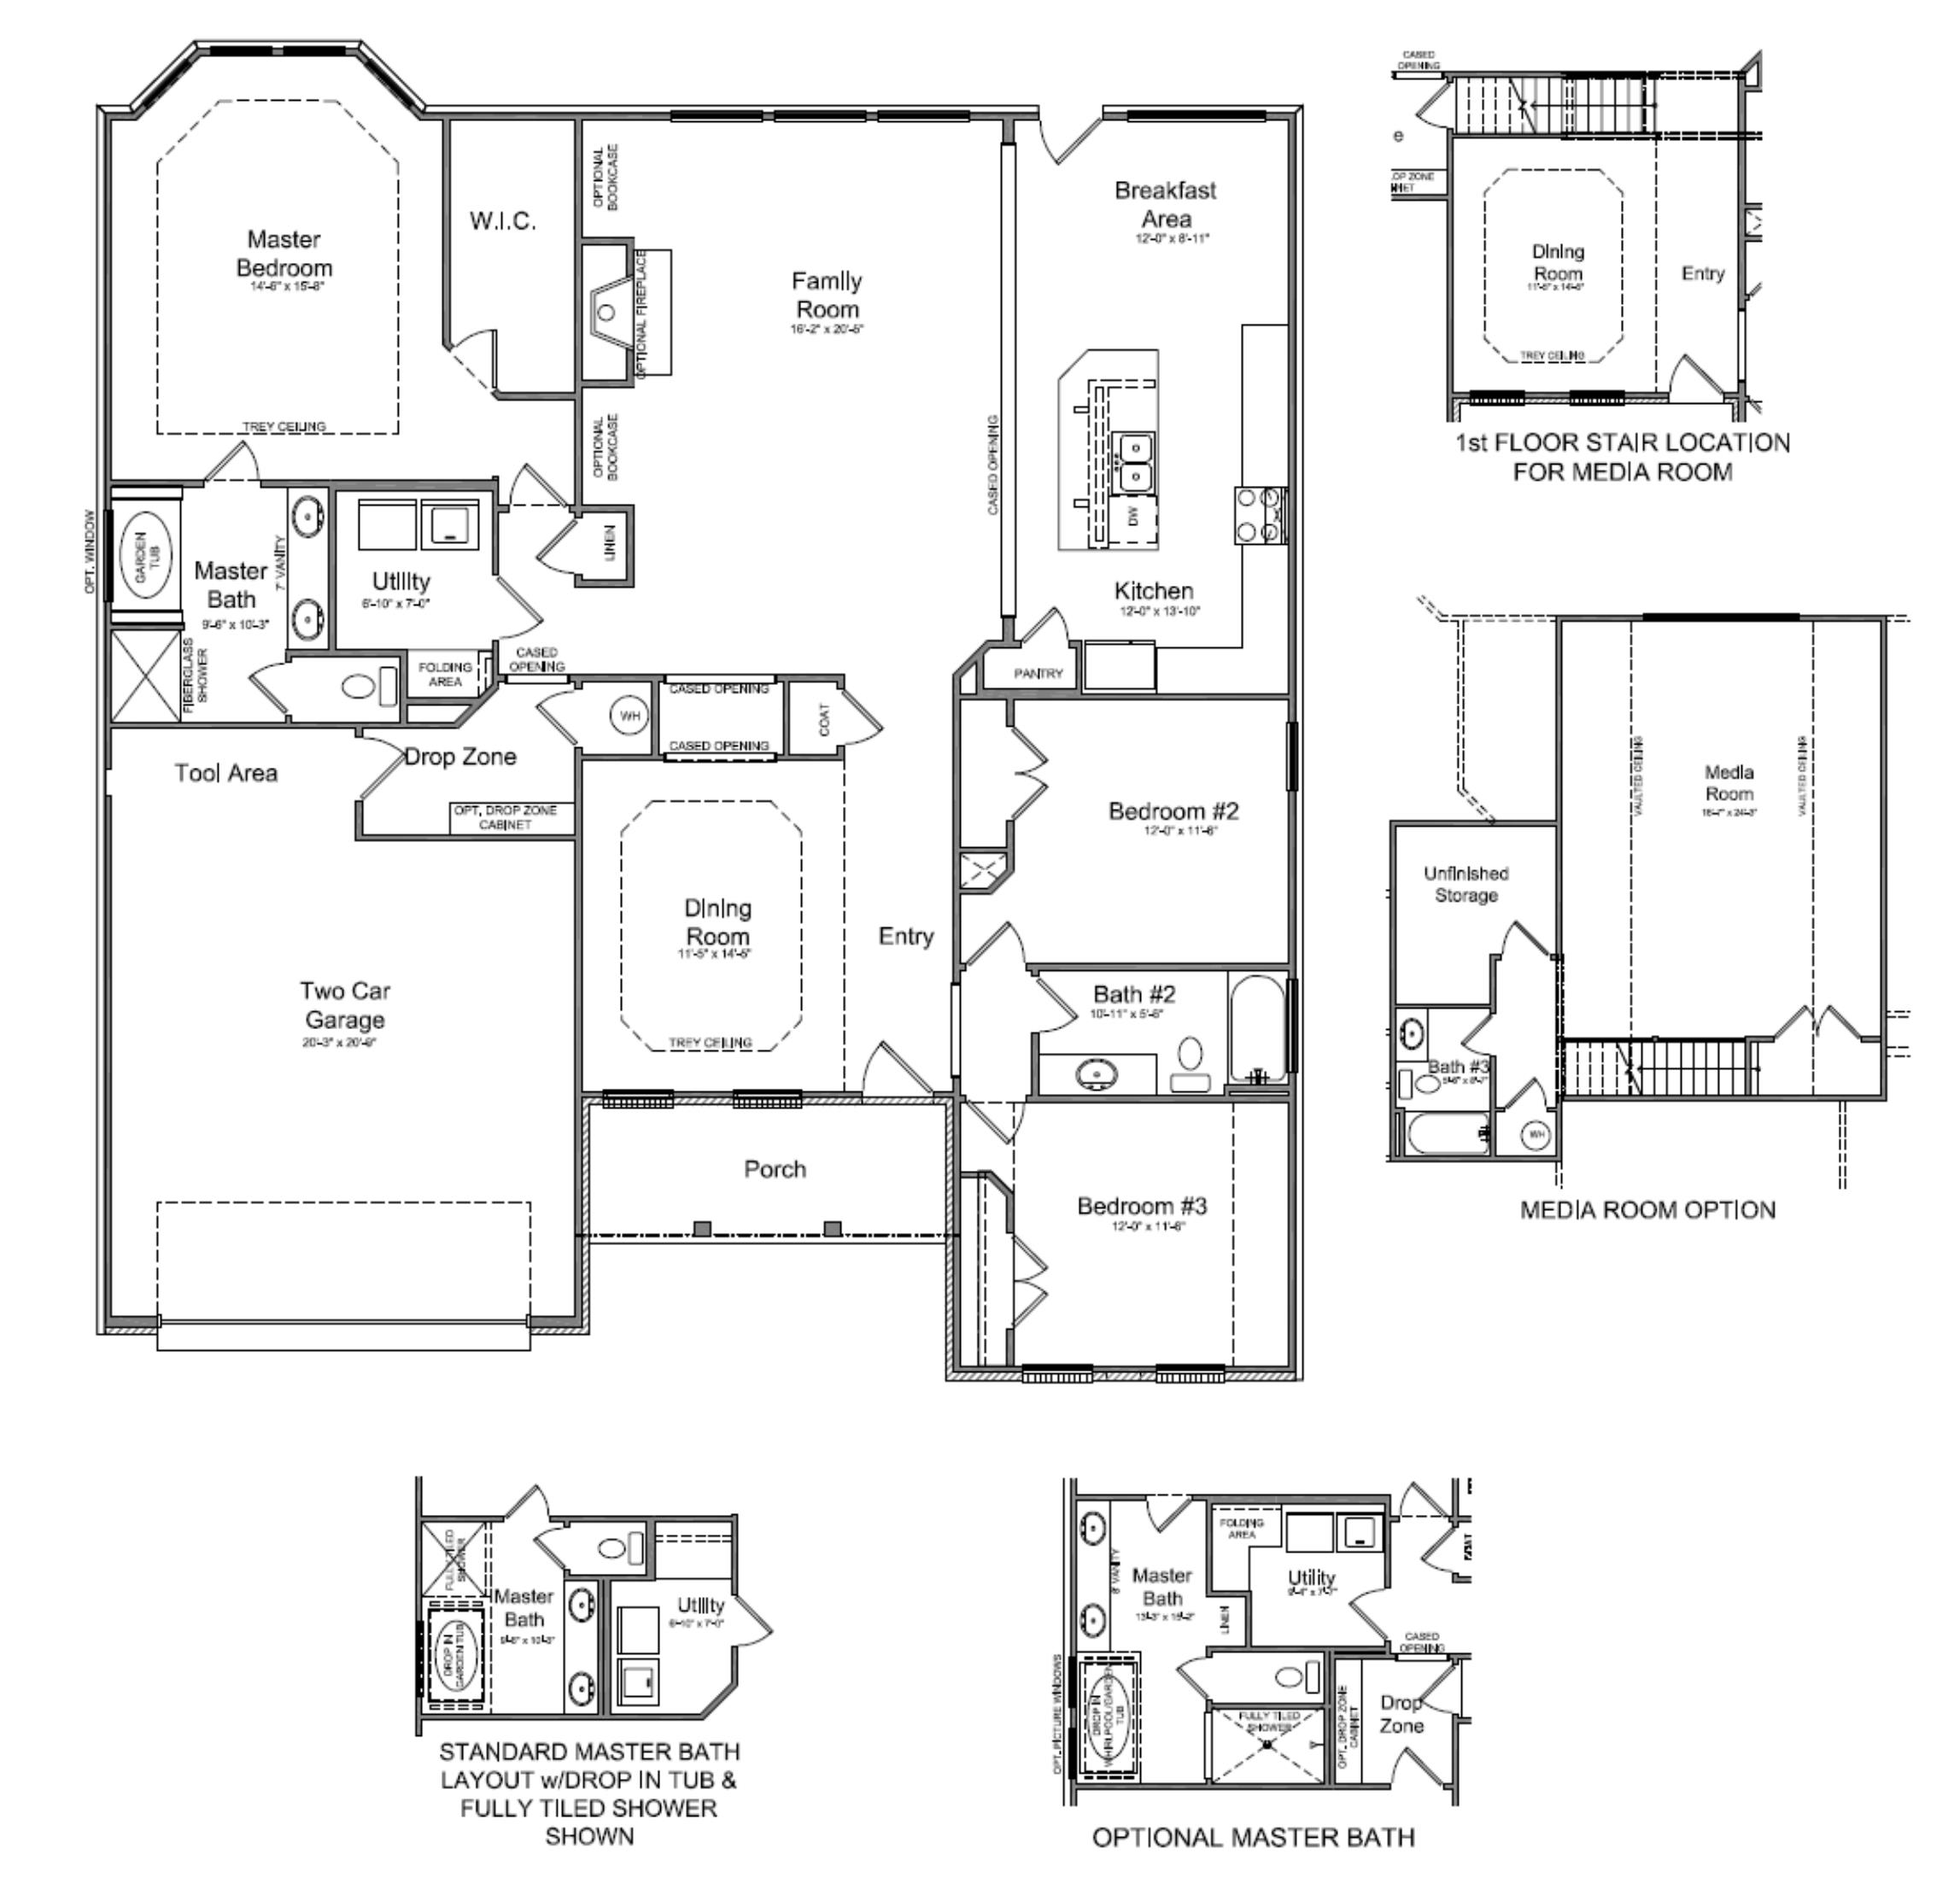 House Plans First Floor Master: With 2 Story House Plans First Floor Master